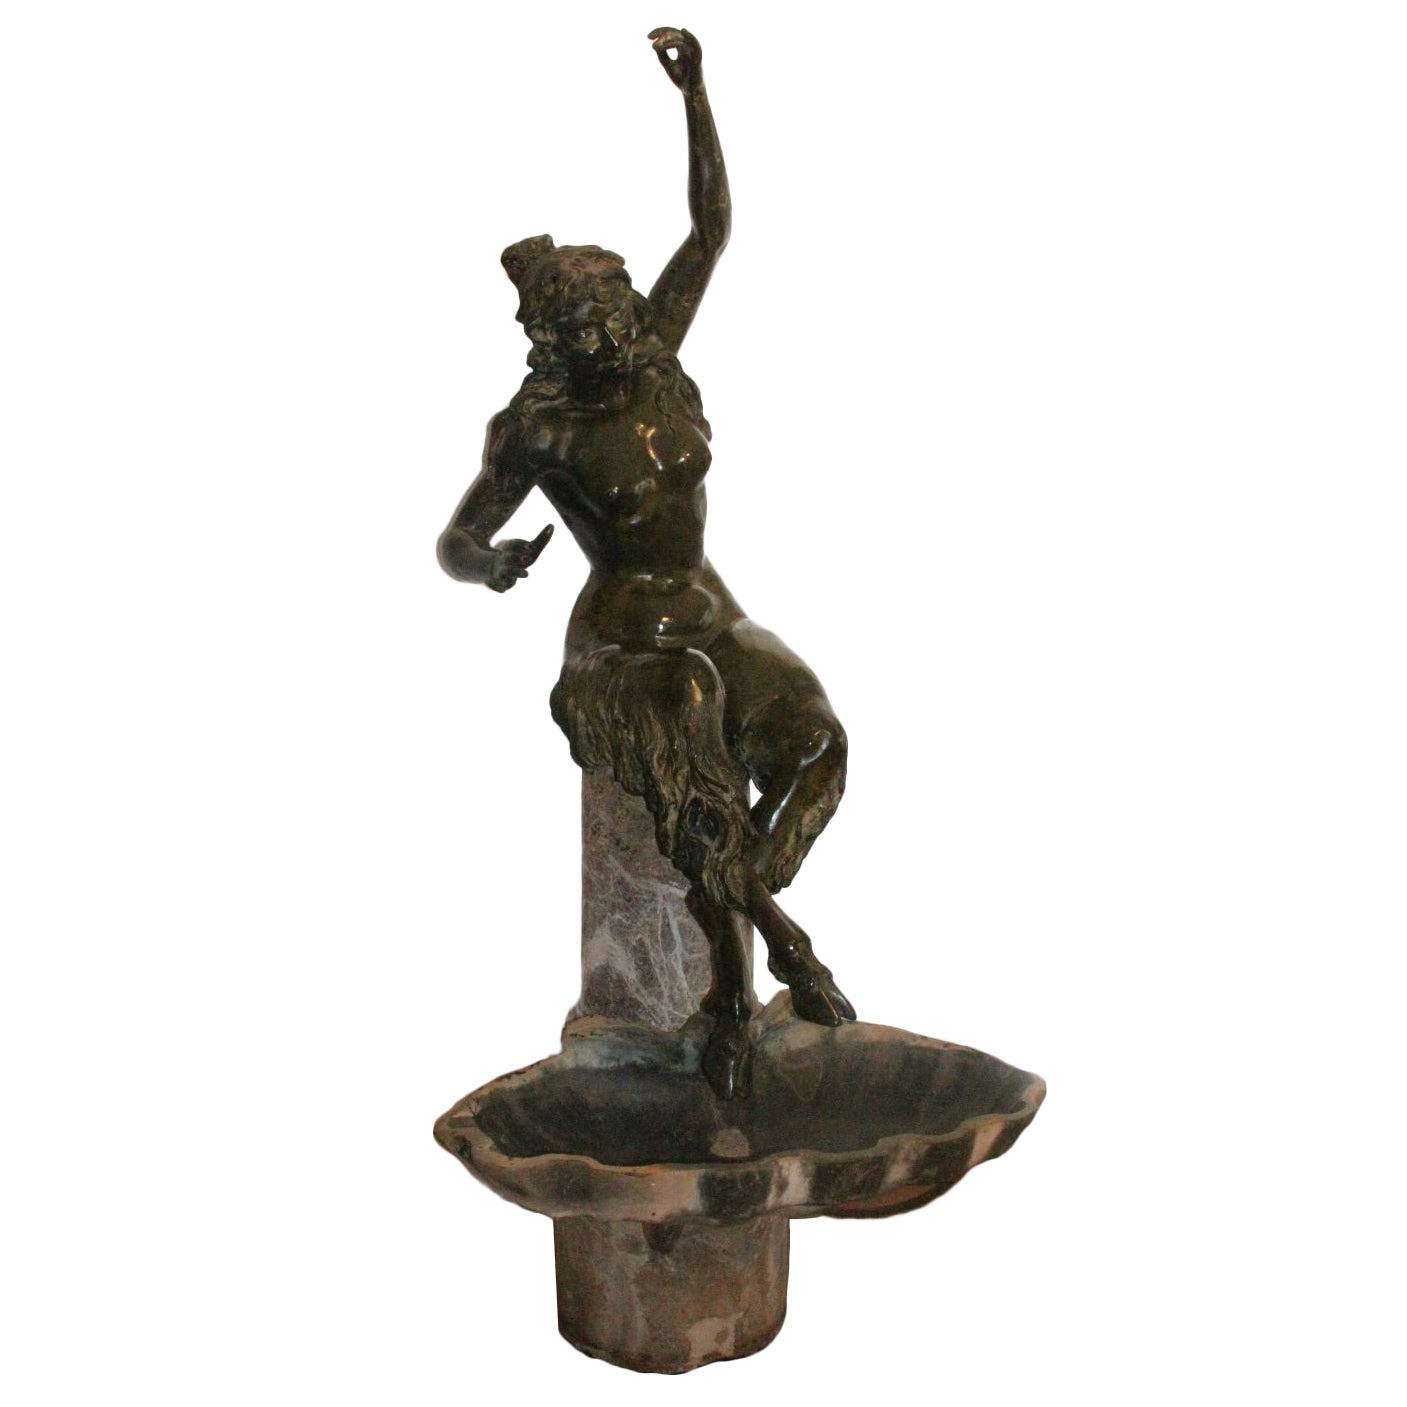 Monumental Patinated Figure Bronze Sculpture